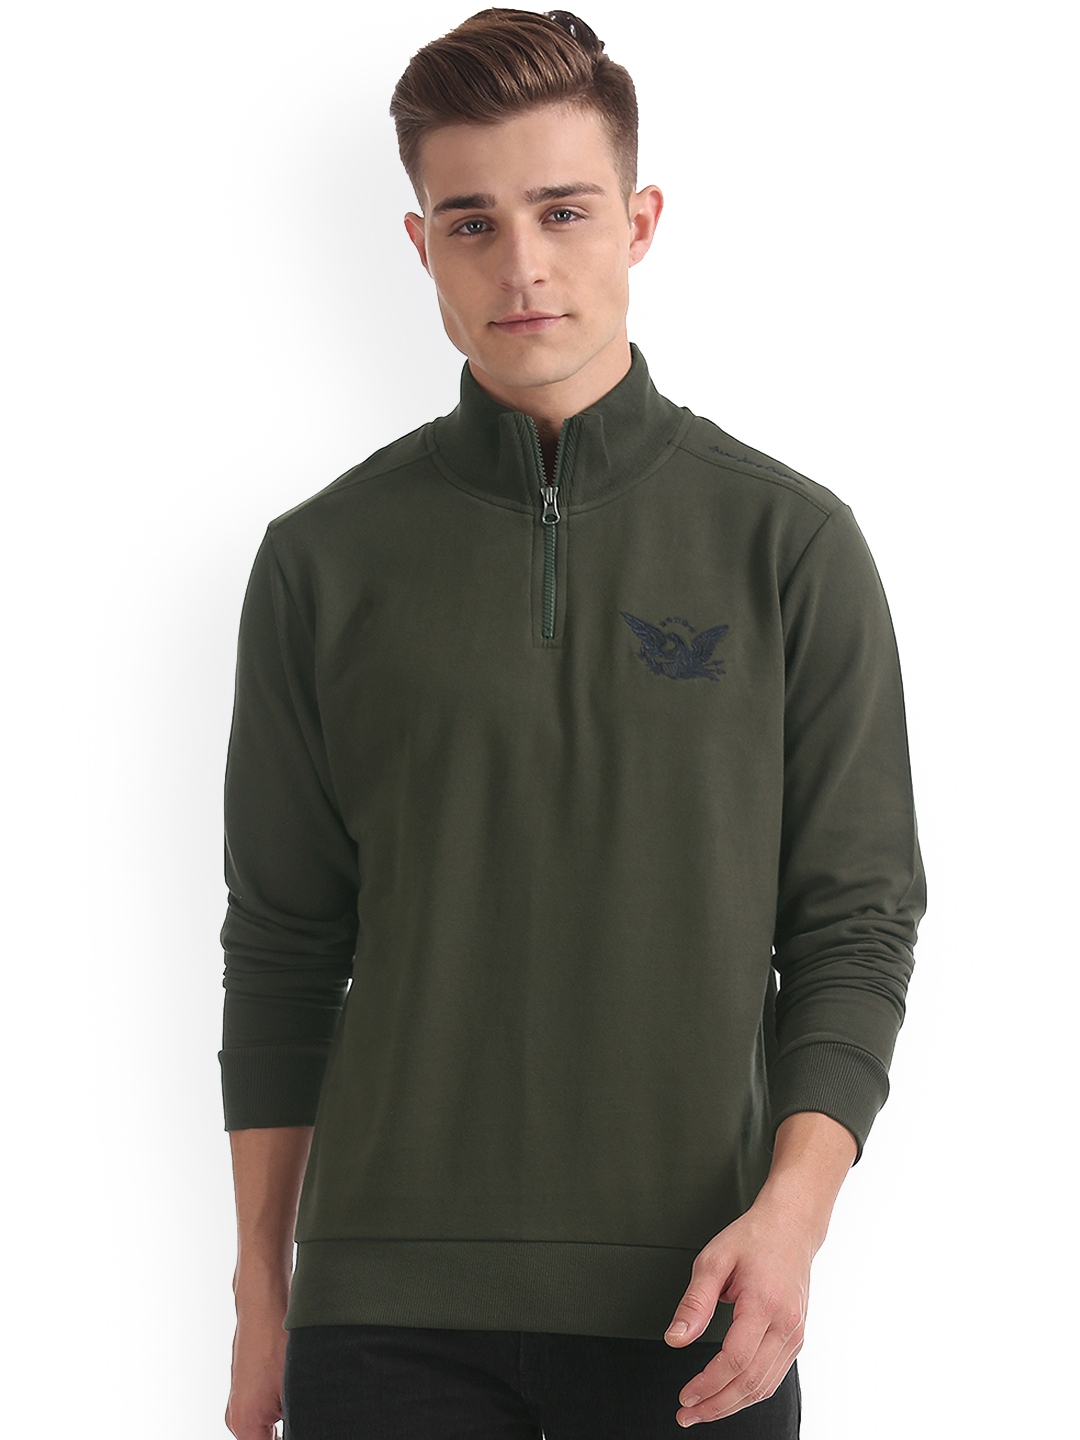 Arrow Blue Jean Co. Men Olive Green Solid Sweatshirt